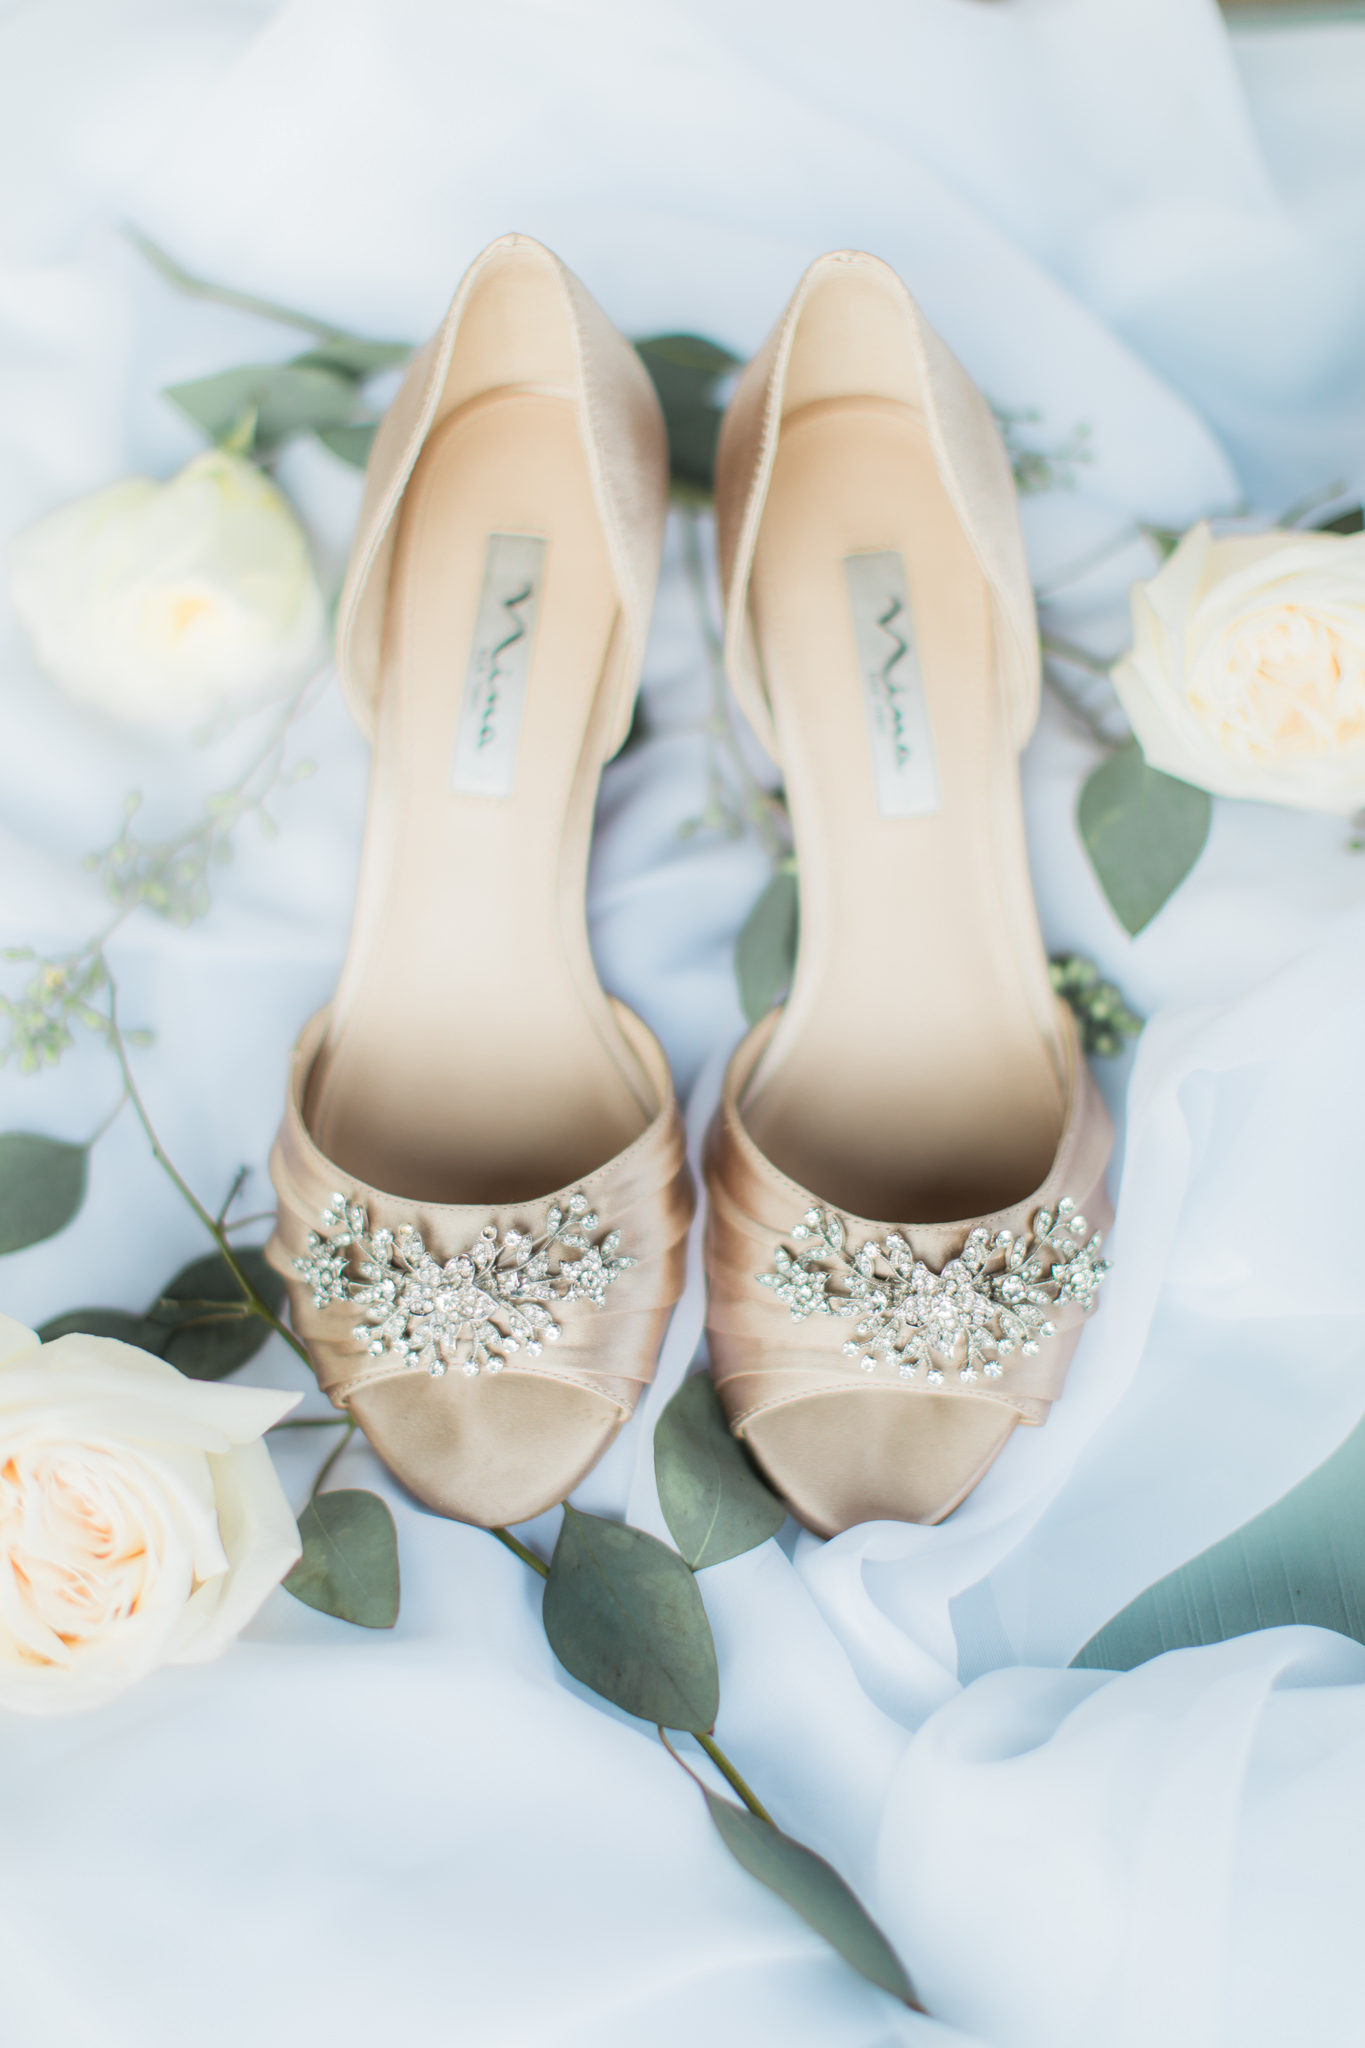 flat lay of nina champagne wedding shoes and euchalyptus greenery and cream garden roses